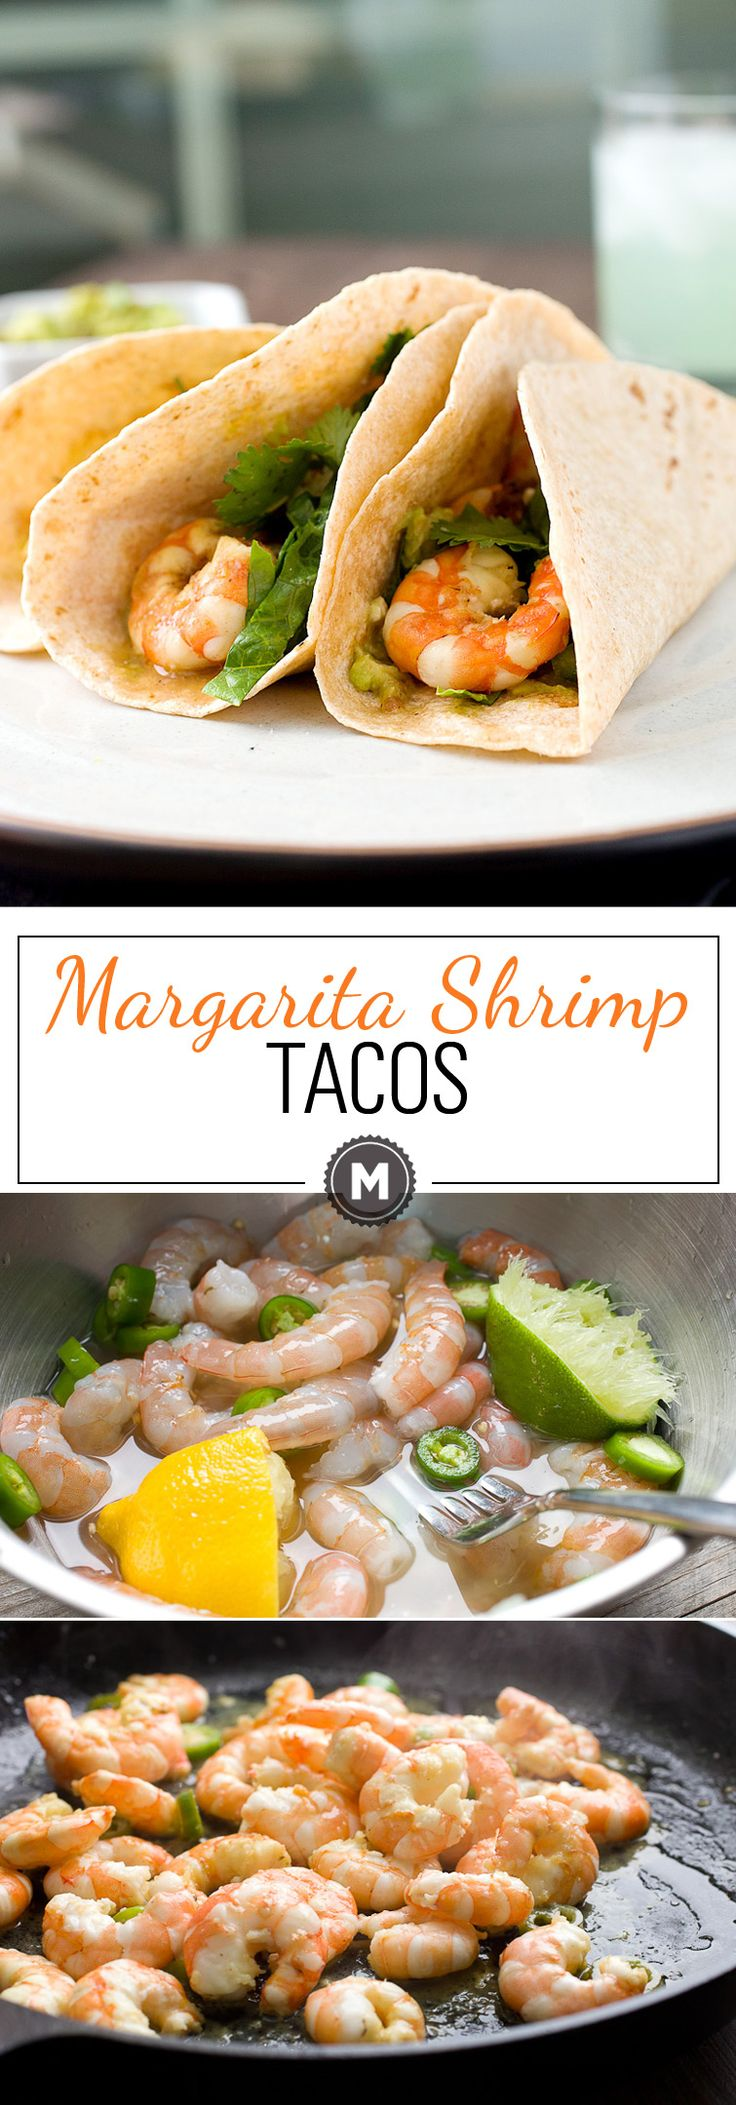 Margarita Shrimp Tacos: Tacos don't have to be heavy! These citrus and tequila marinaded shrimp are light and zesty and perfect for a fresh Tex-Mex dinner. Don't skimp on the guacamole! | macheesmo.com